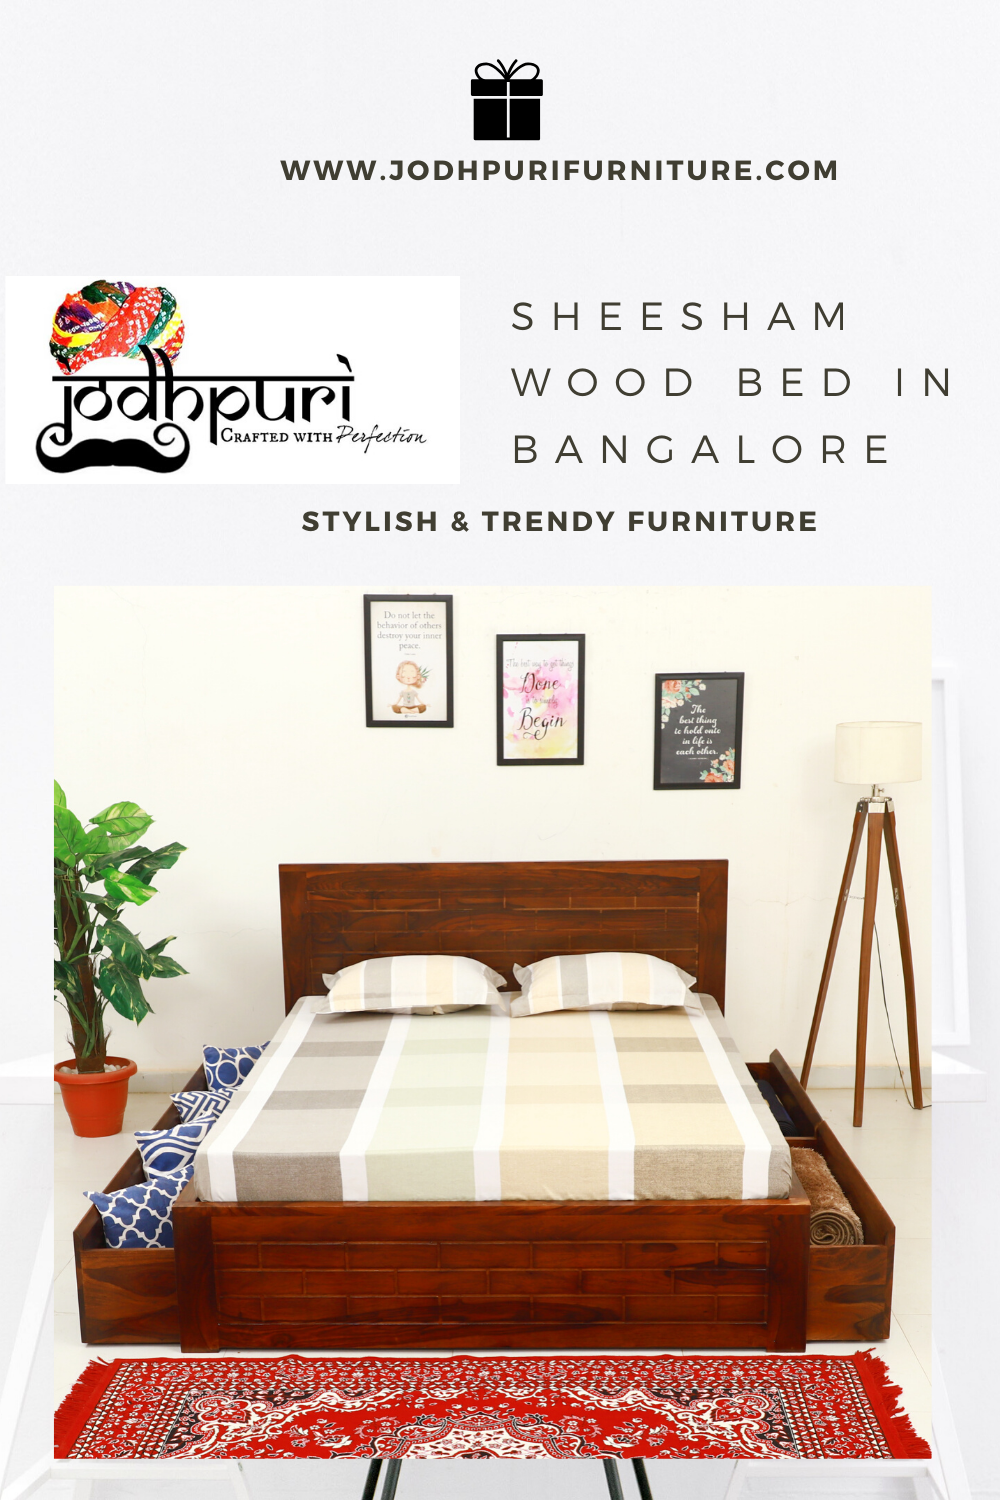 Sheesham Wood Bed In Bangalore In Honey Finish Is A Fabulous Kingsizebed Made With Sheeshamwood And Thus It Will Make S In 2020 Sheesham Wood Furniture Furniture Bed